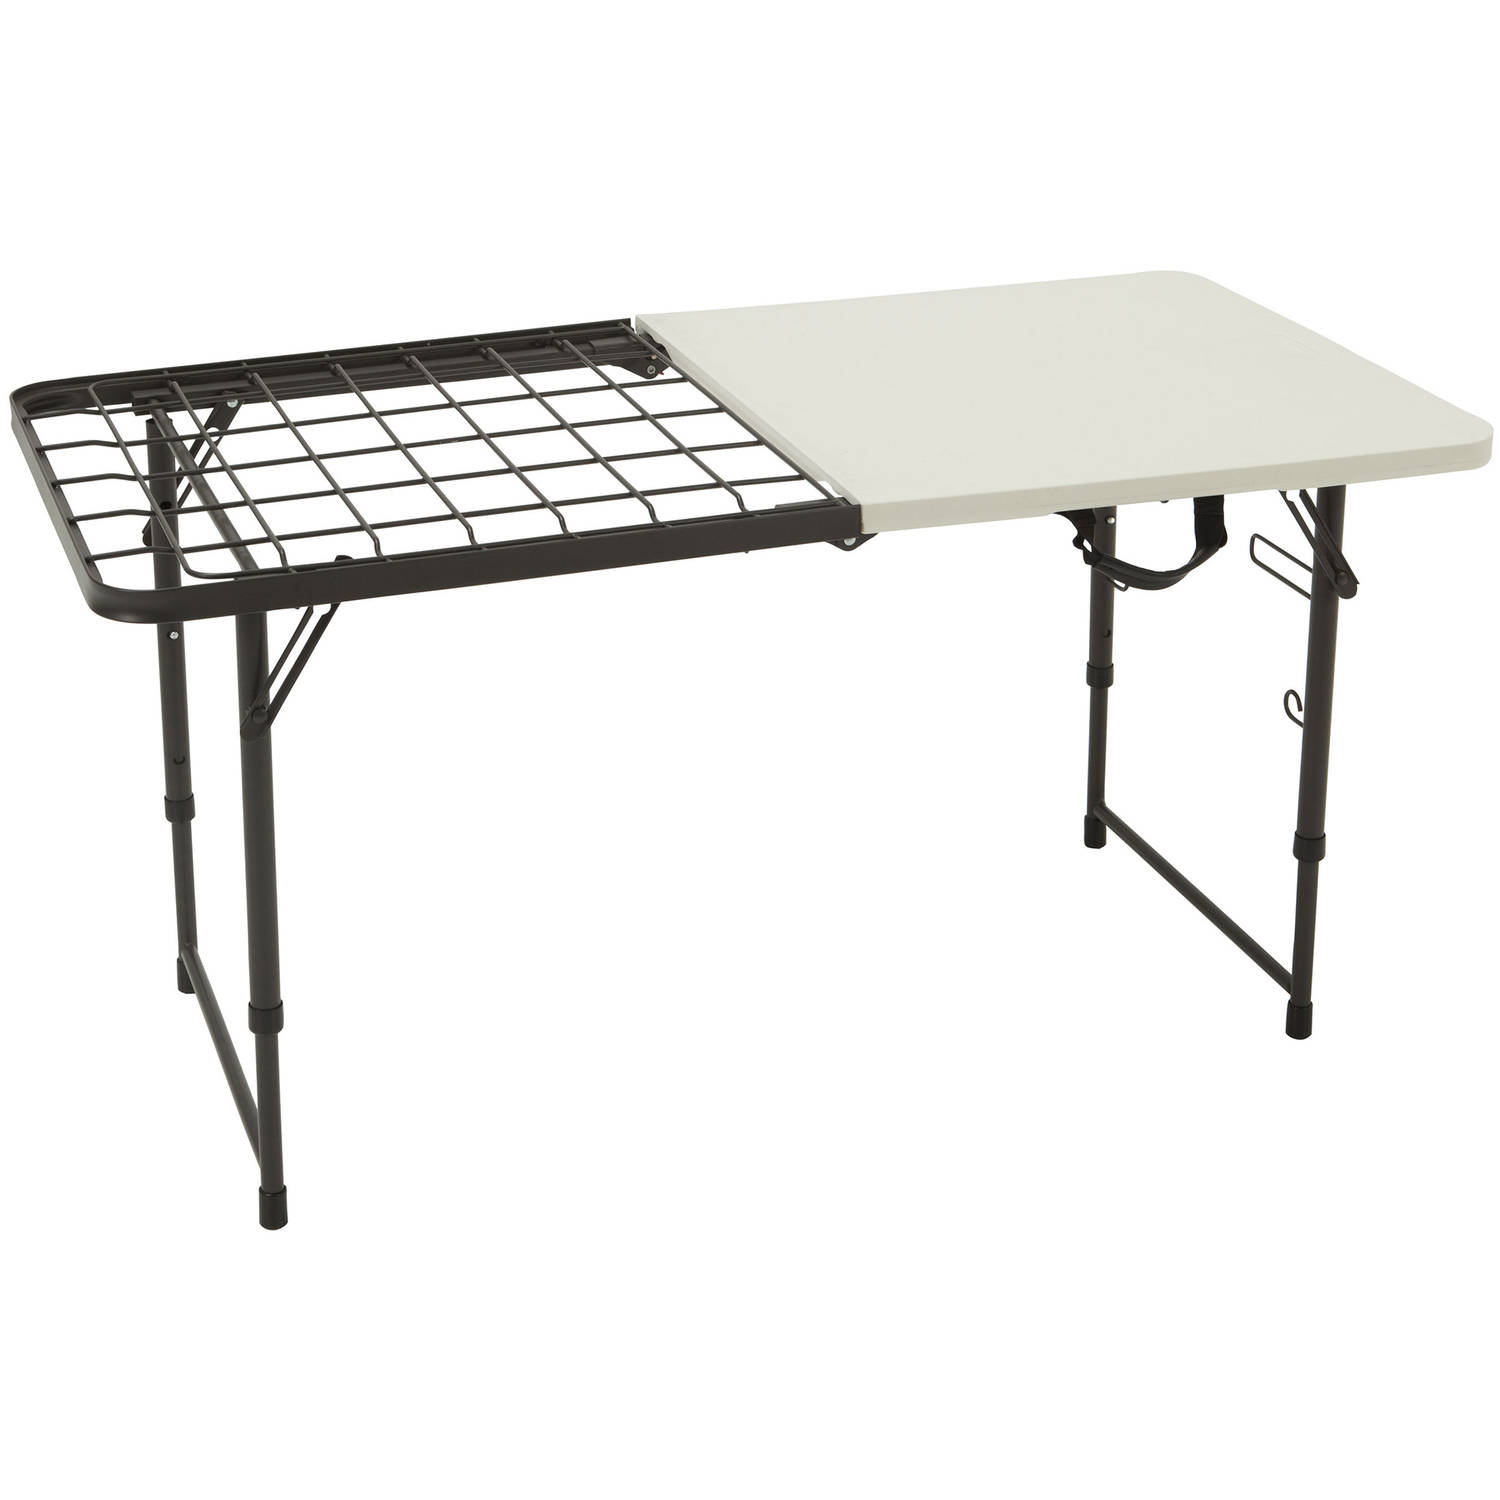 lifetime 4' fold-in-half cooking table - walmart